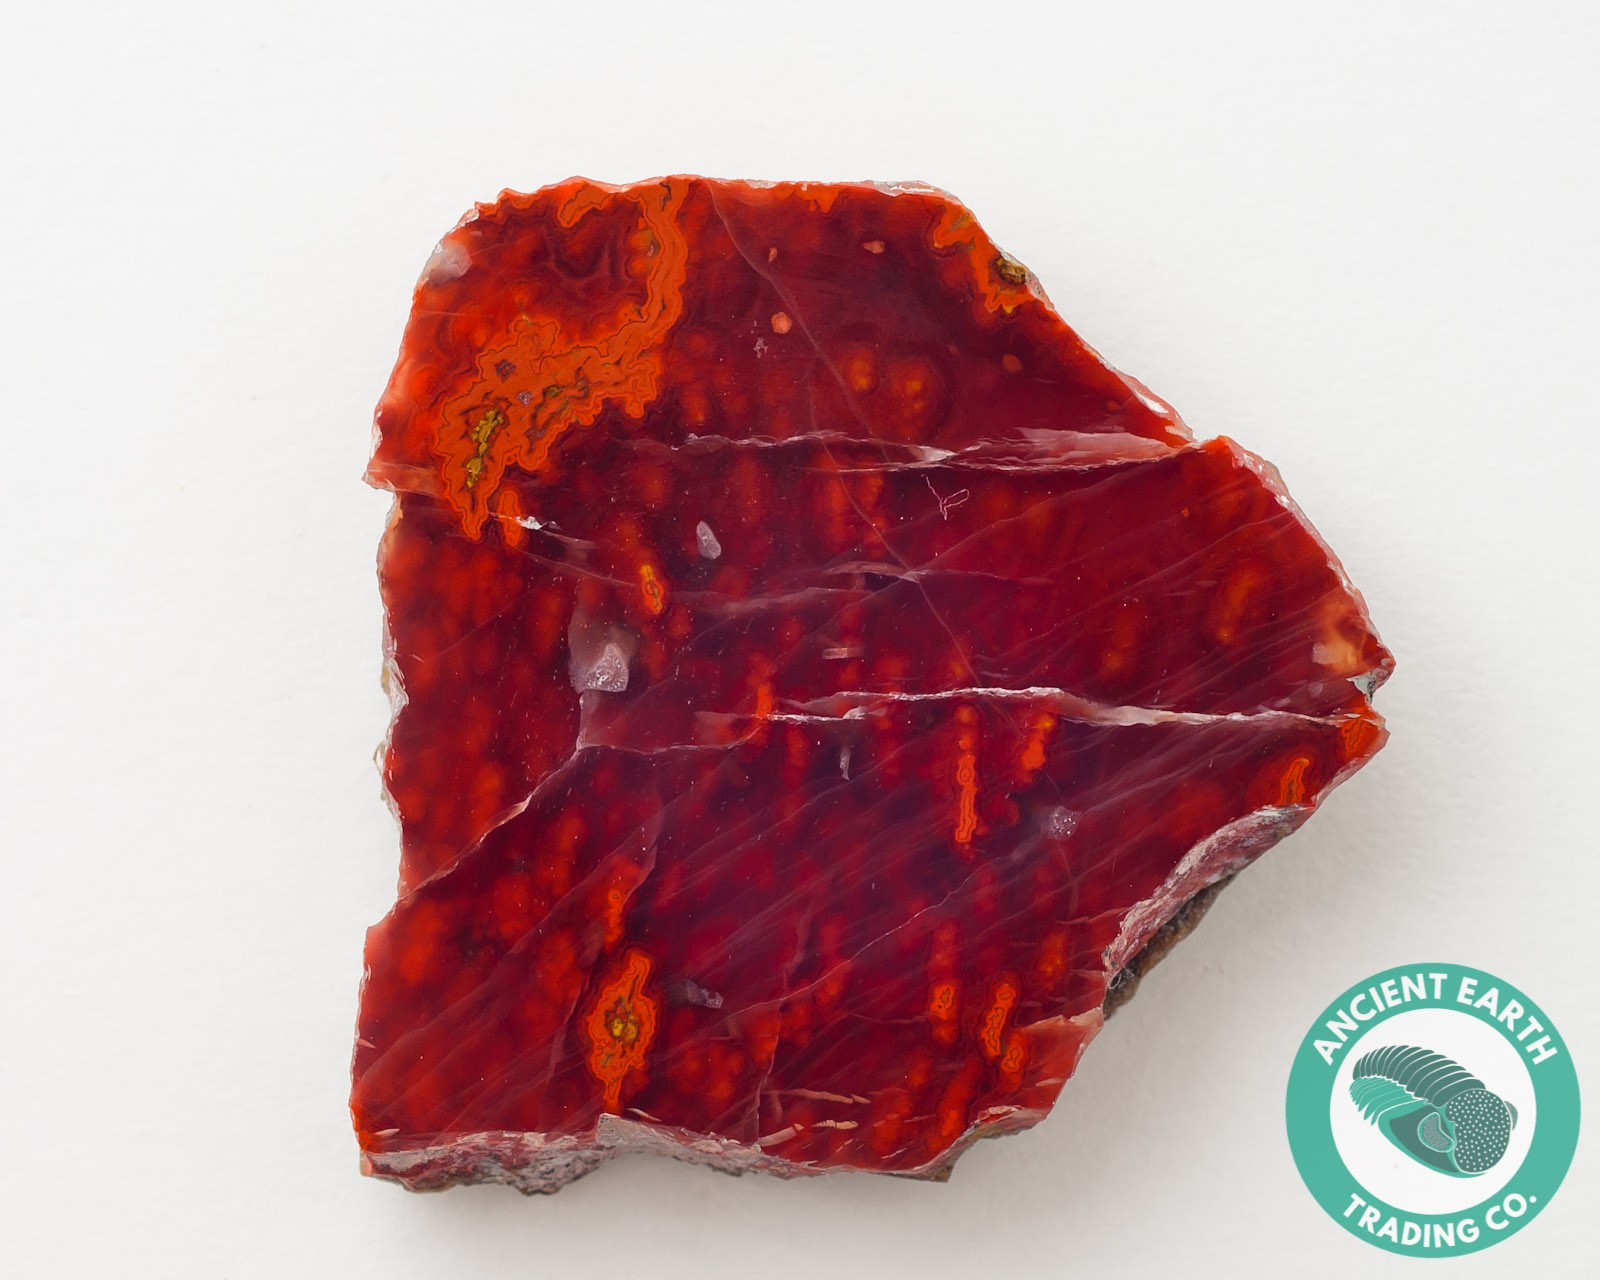 1.5 in Long Cut Vein Agate from Kerrouchene, Morocco